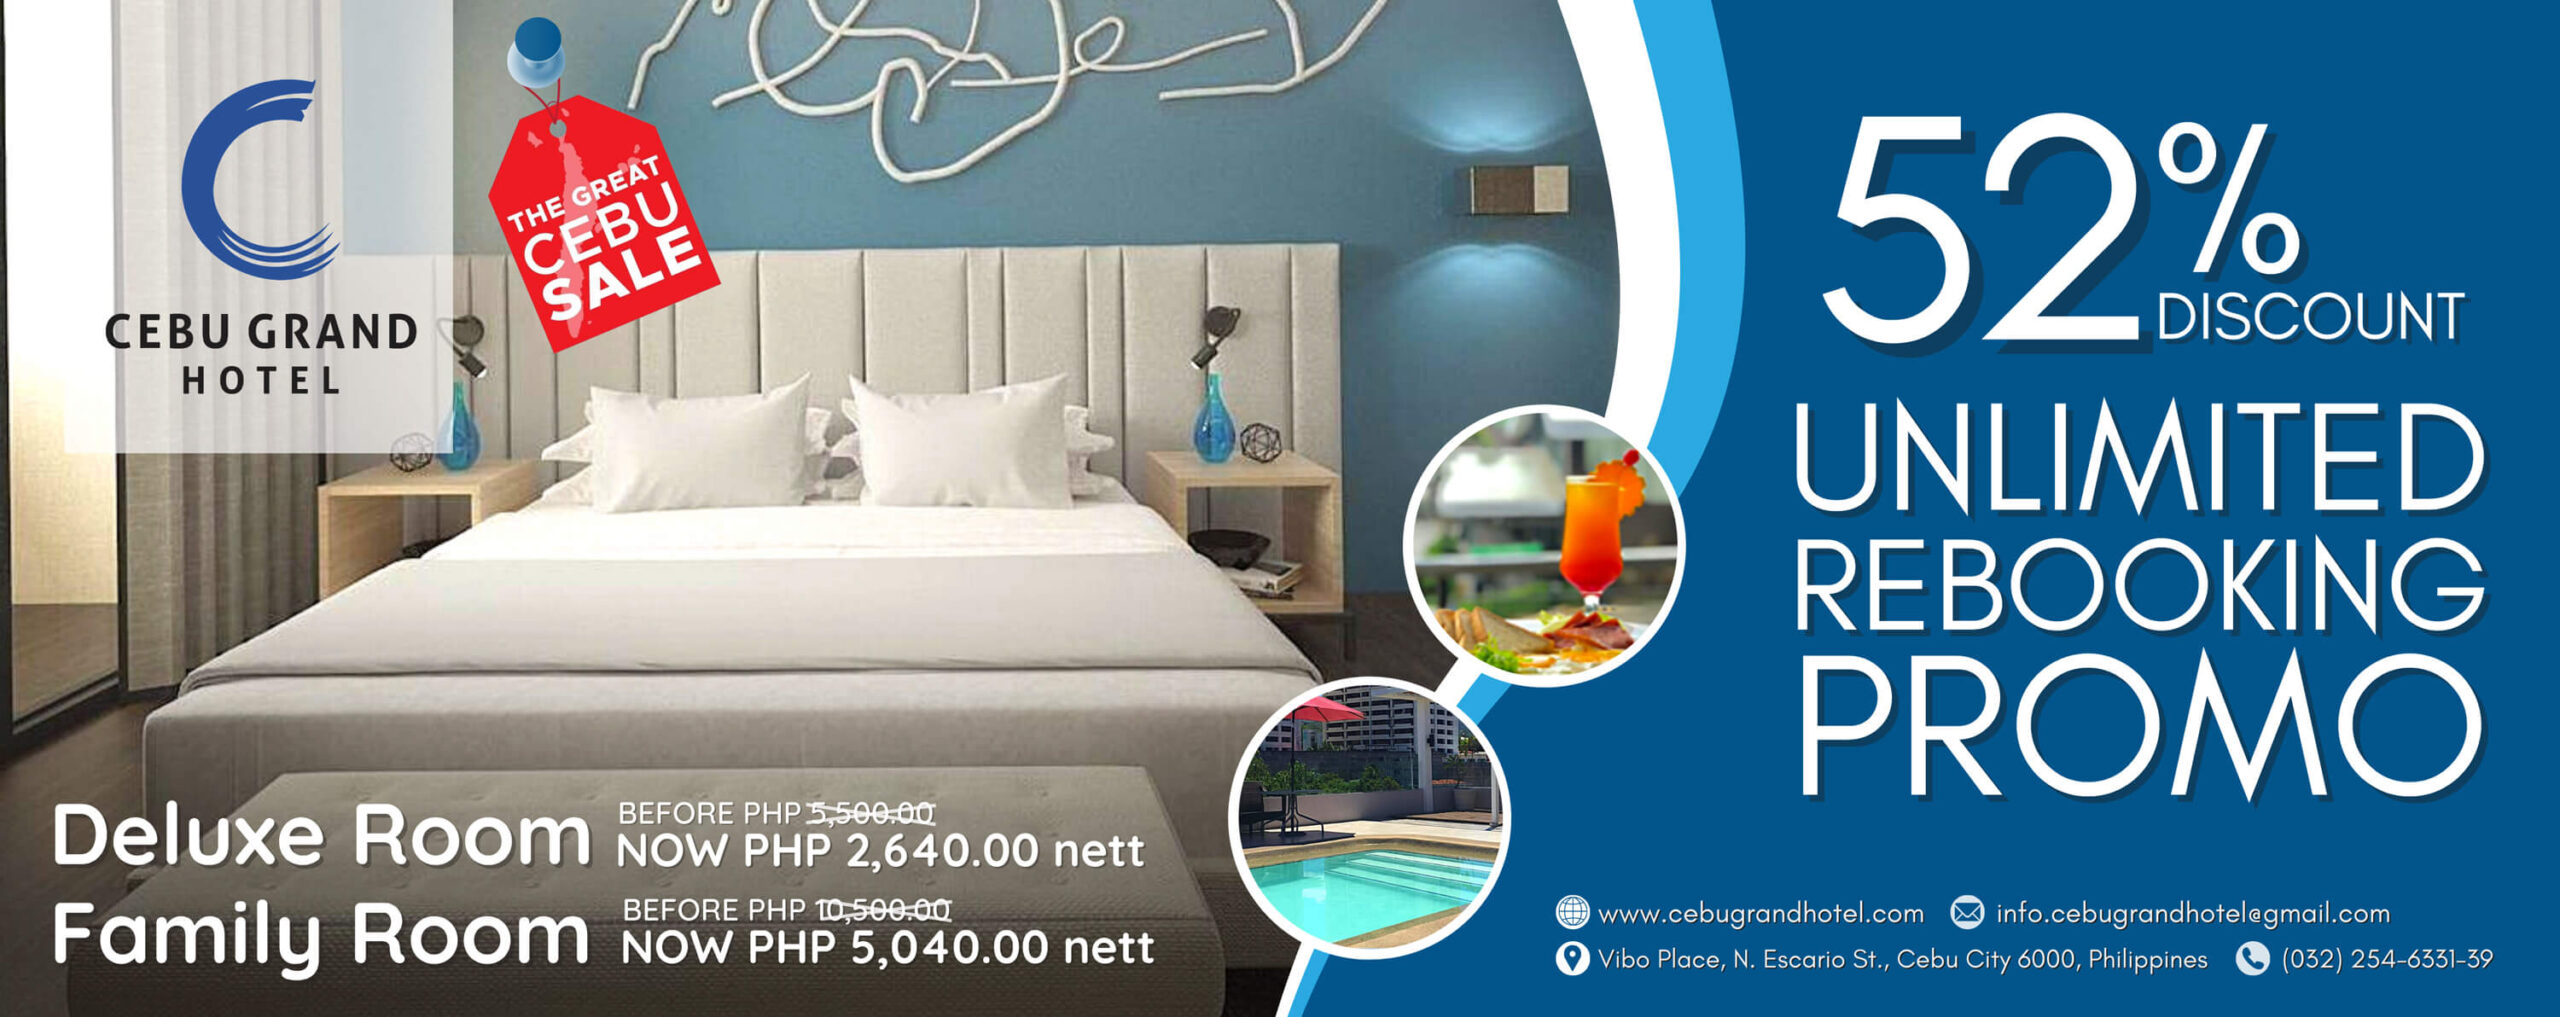 Cebu Grand Hotel offers 52% discount with unlimited rebooking